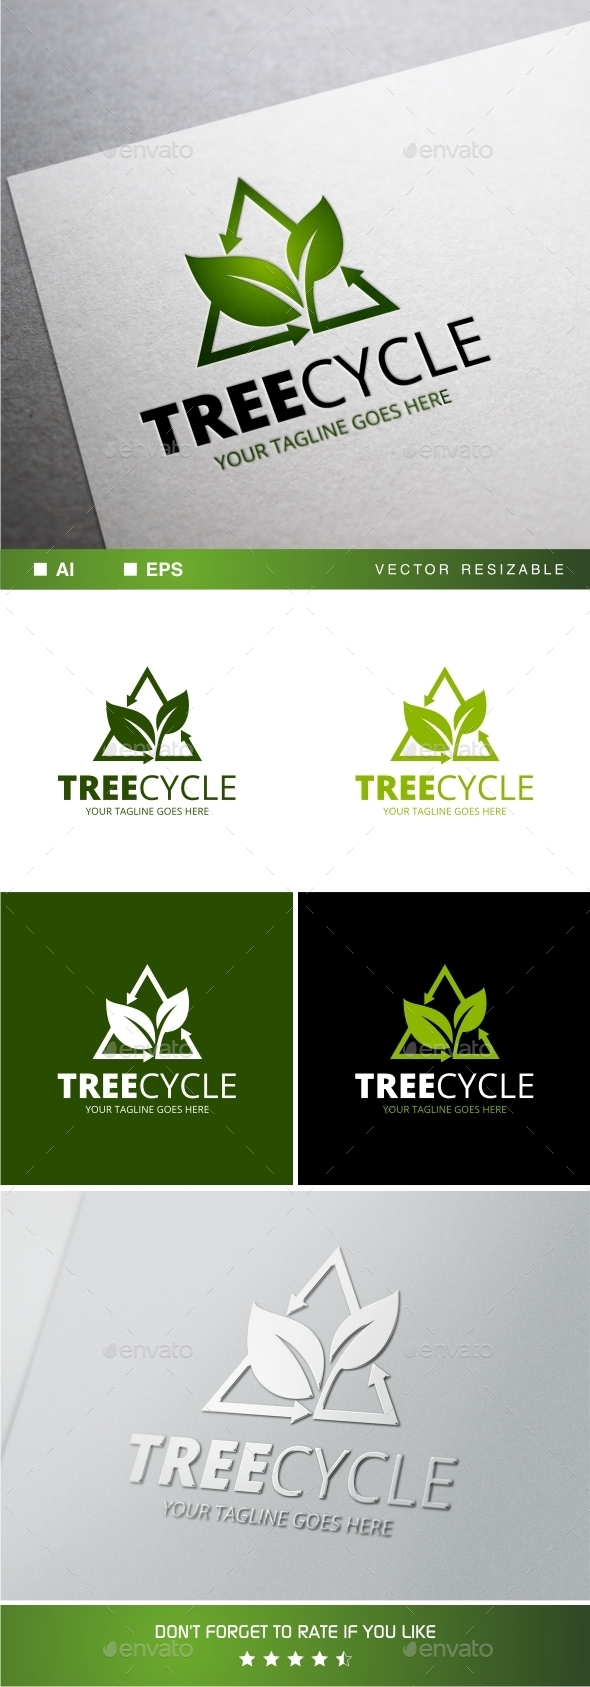 GraphicRiver Treecycle Logo Template 11770850